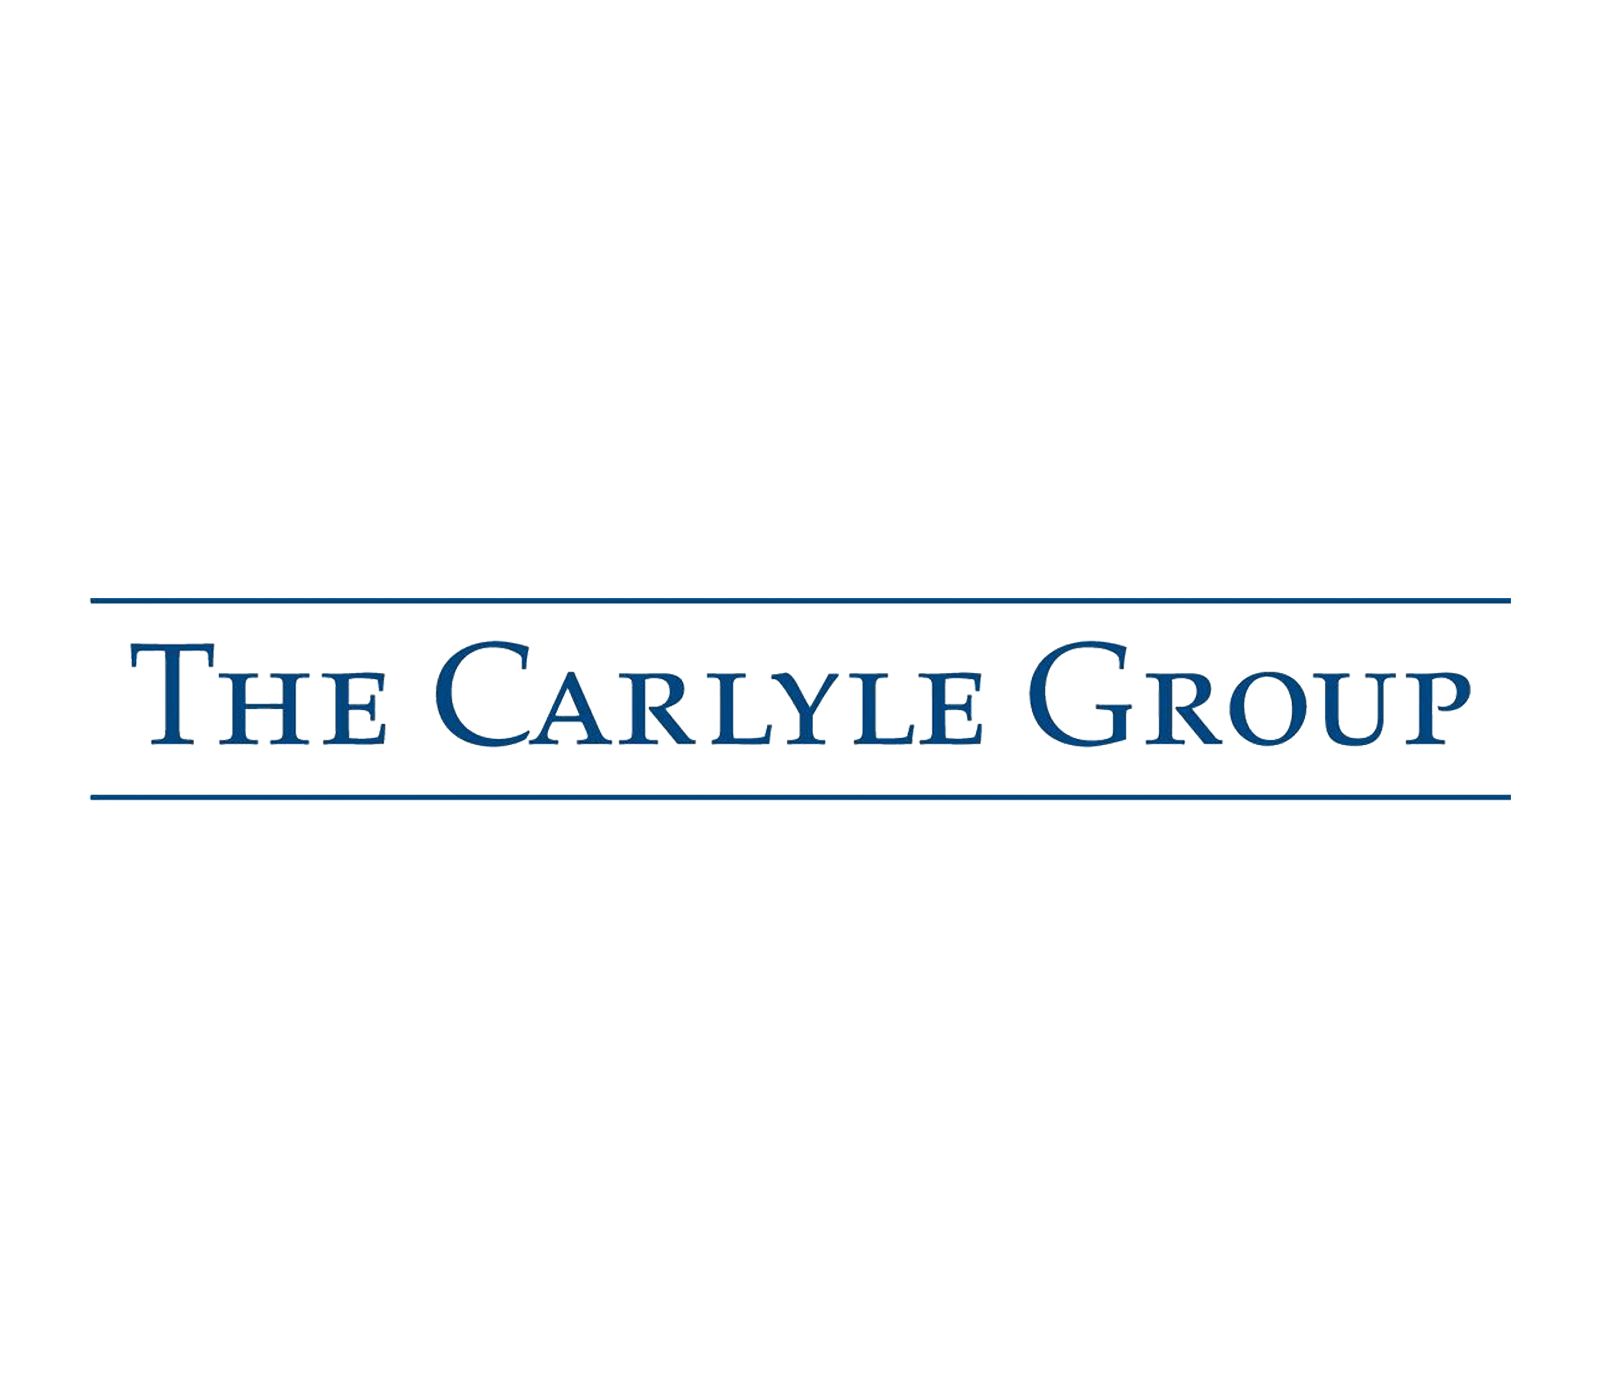 The-Carlyle-Group-Sponsor.png